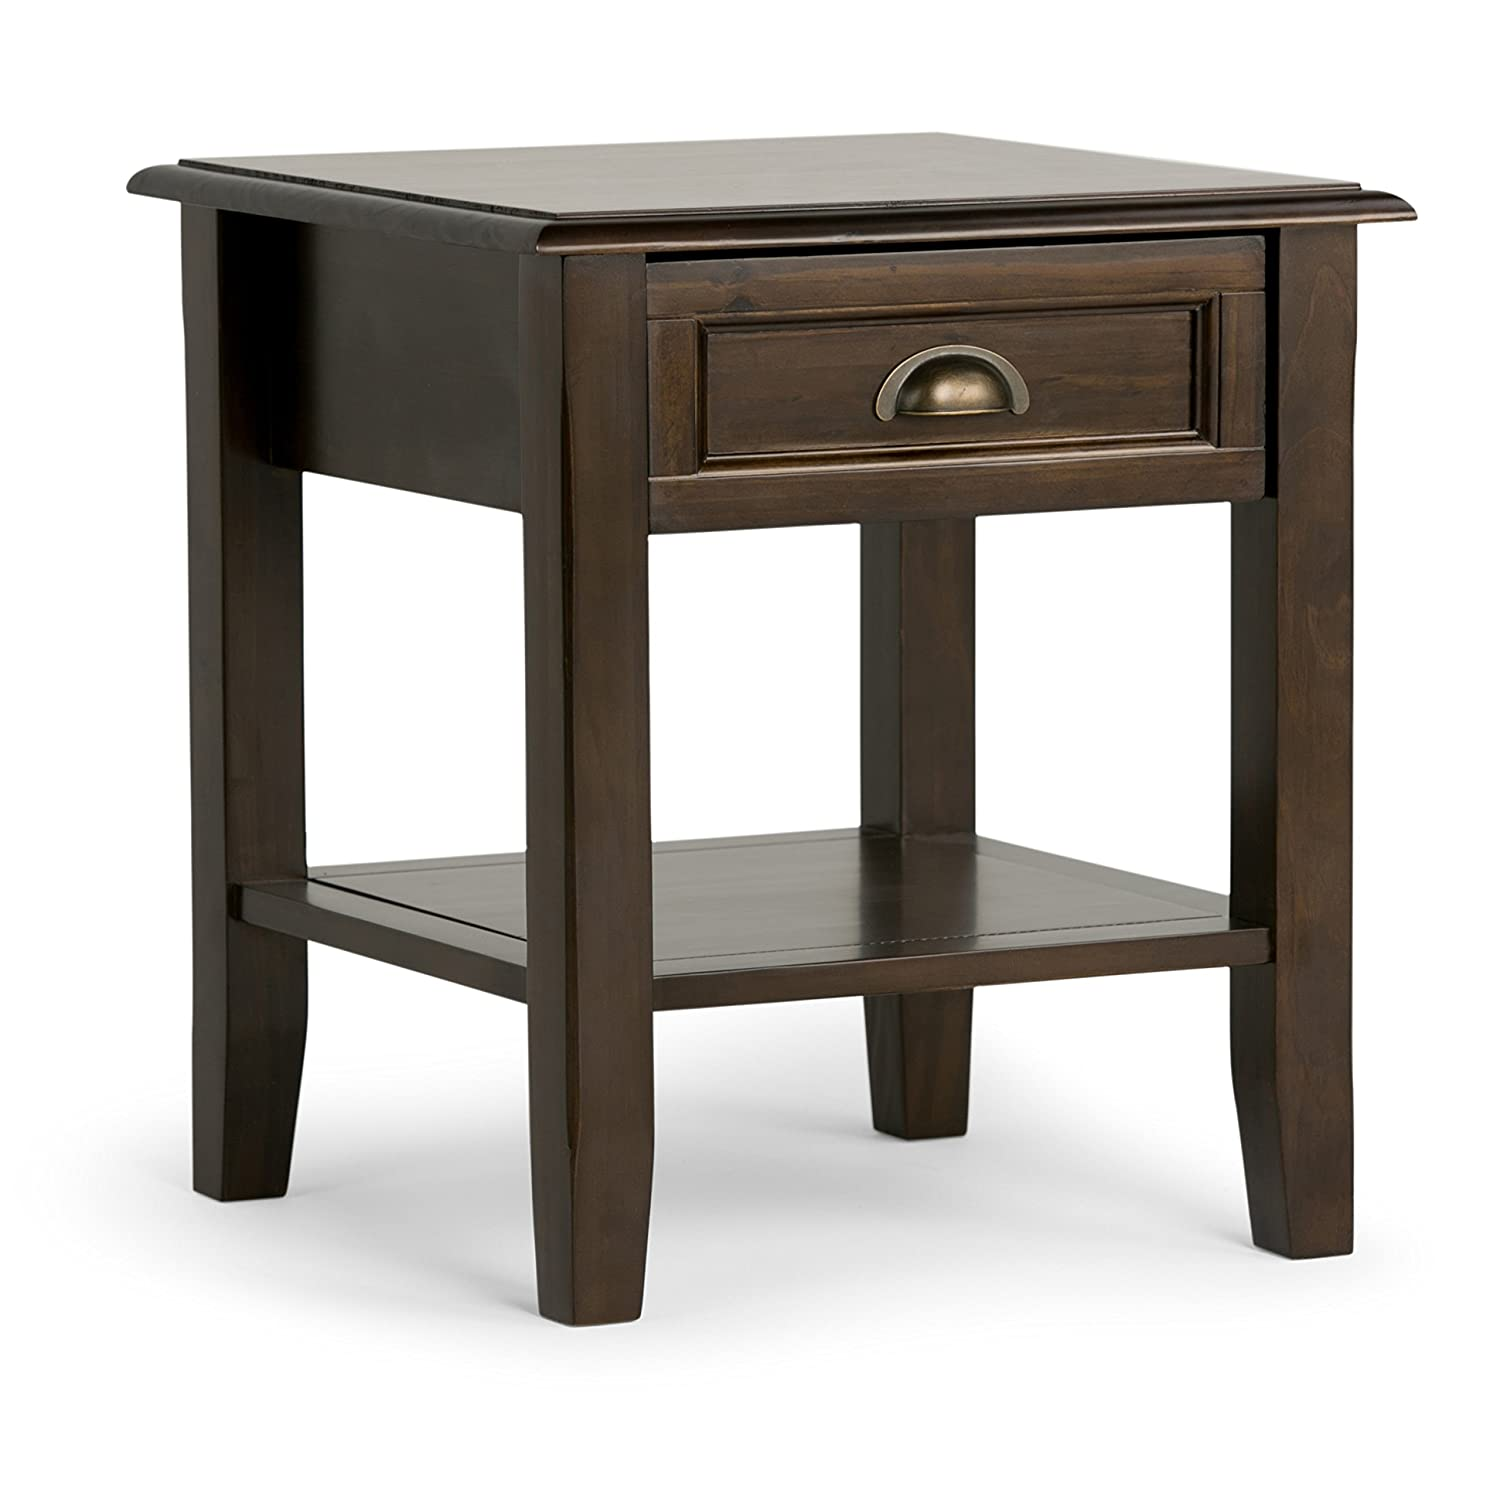 Simpli Home 3AXCBUR-002 Burlington Solid Wood 18 inch Wide Square Traditional End Side Table in Espresso Brown